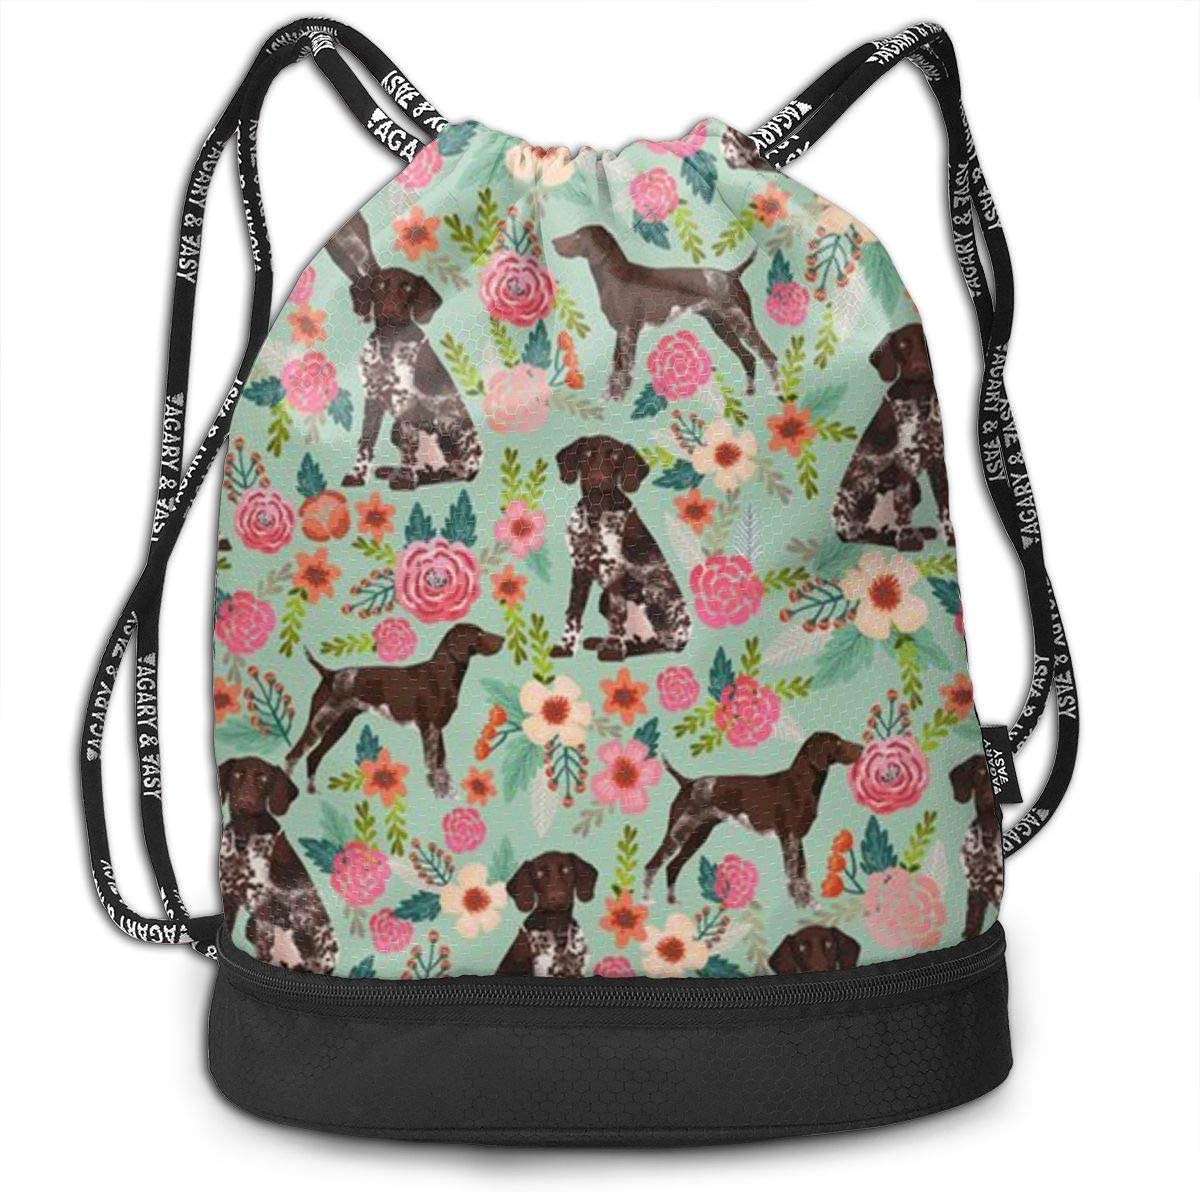 Drawstring Backpack German Shorthaired Pointer And Floral Beautiful Bags Knapsack For Hiking